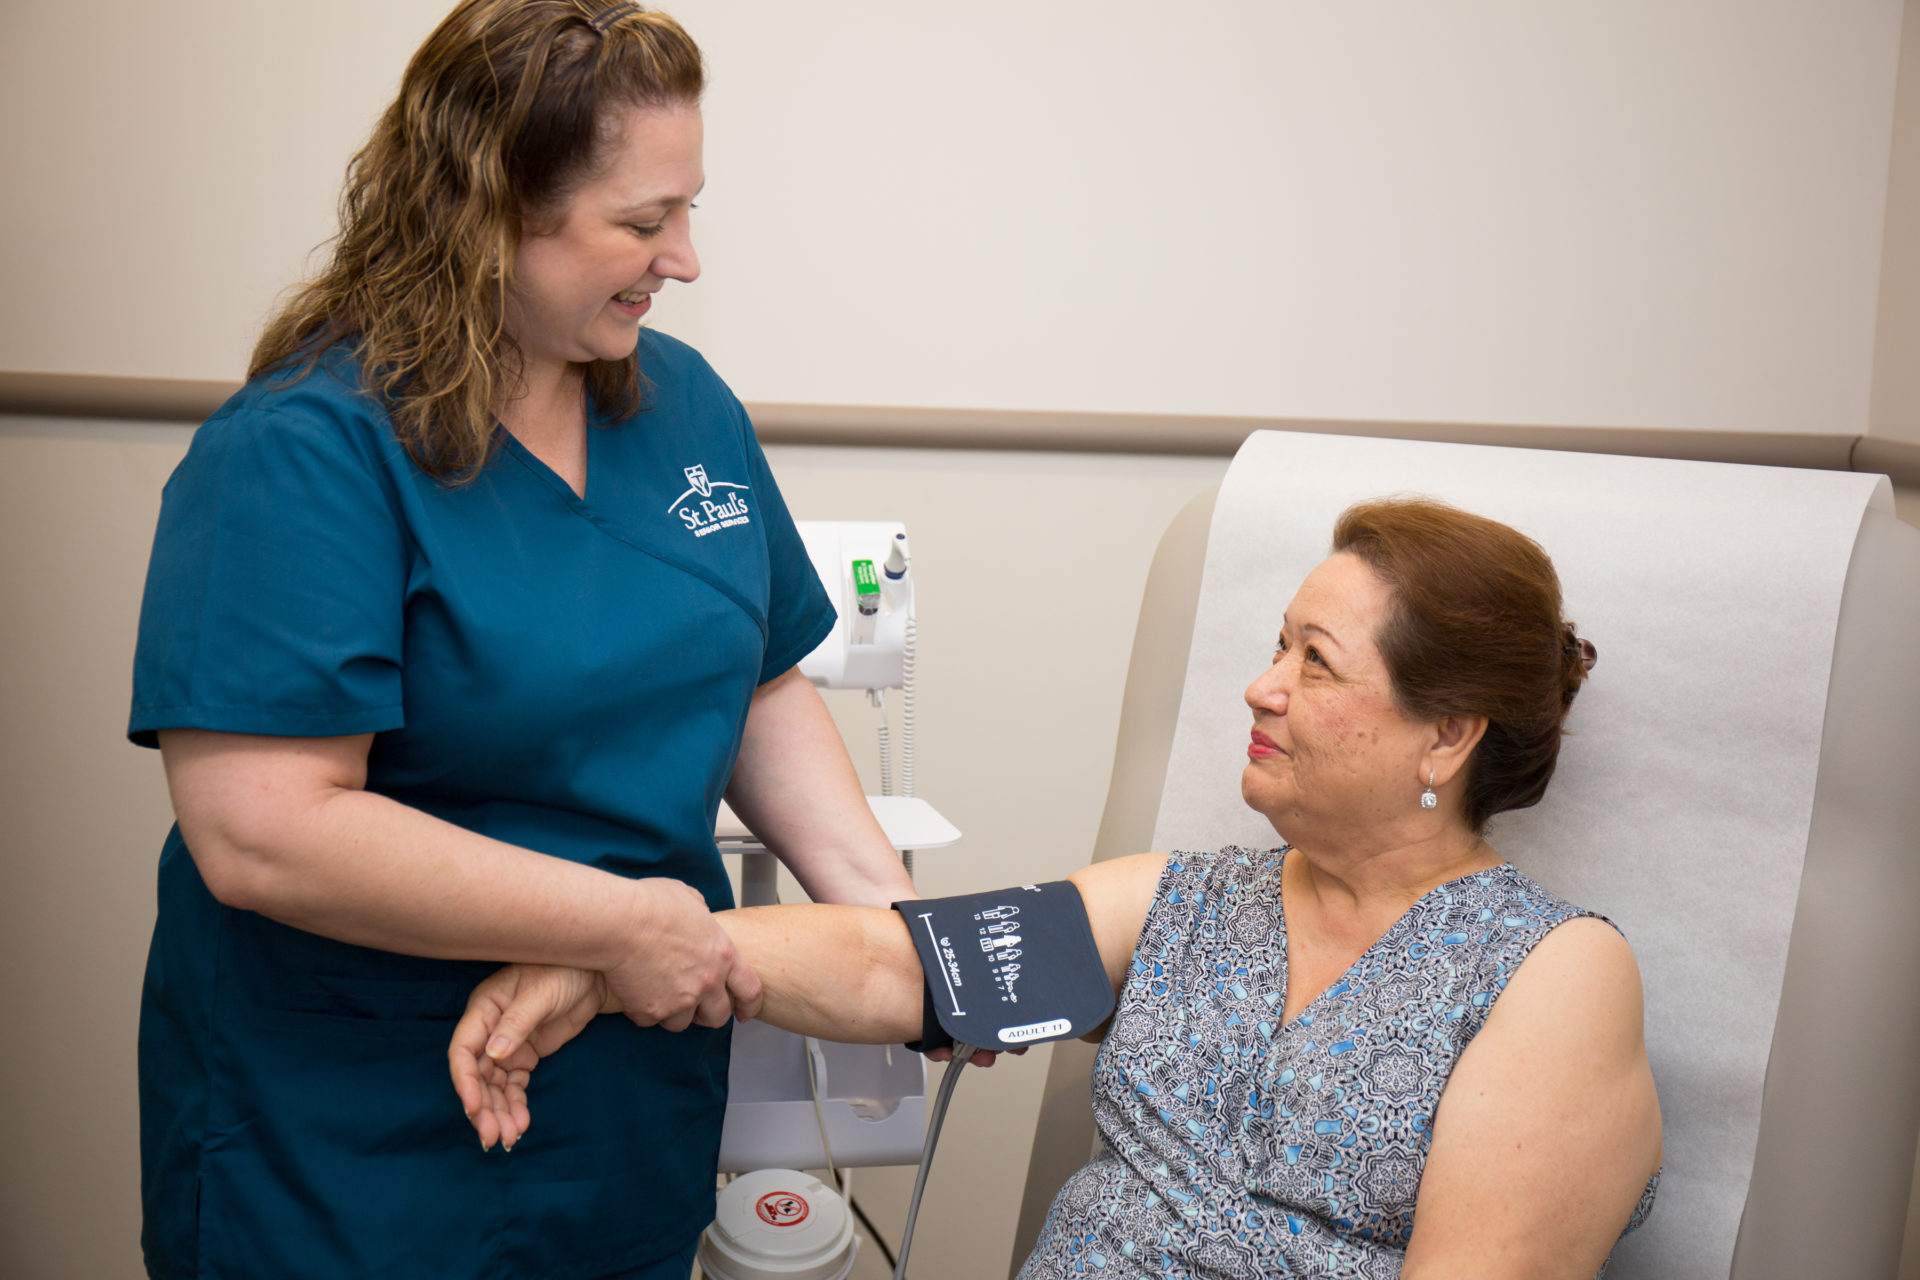 A nurse checks a patients blood pressure in hospital bed